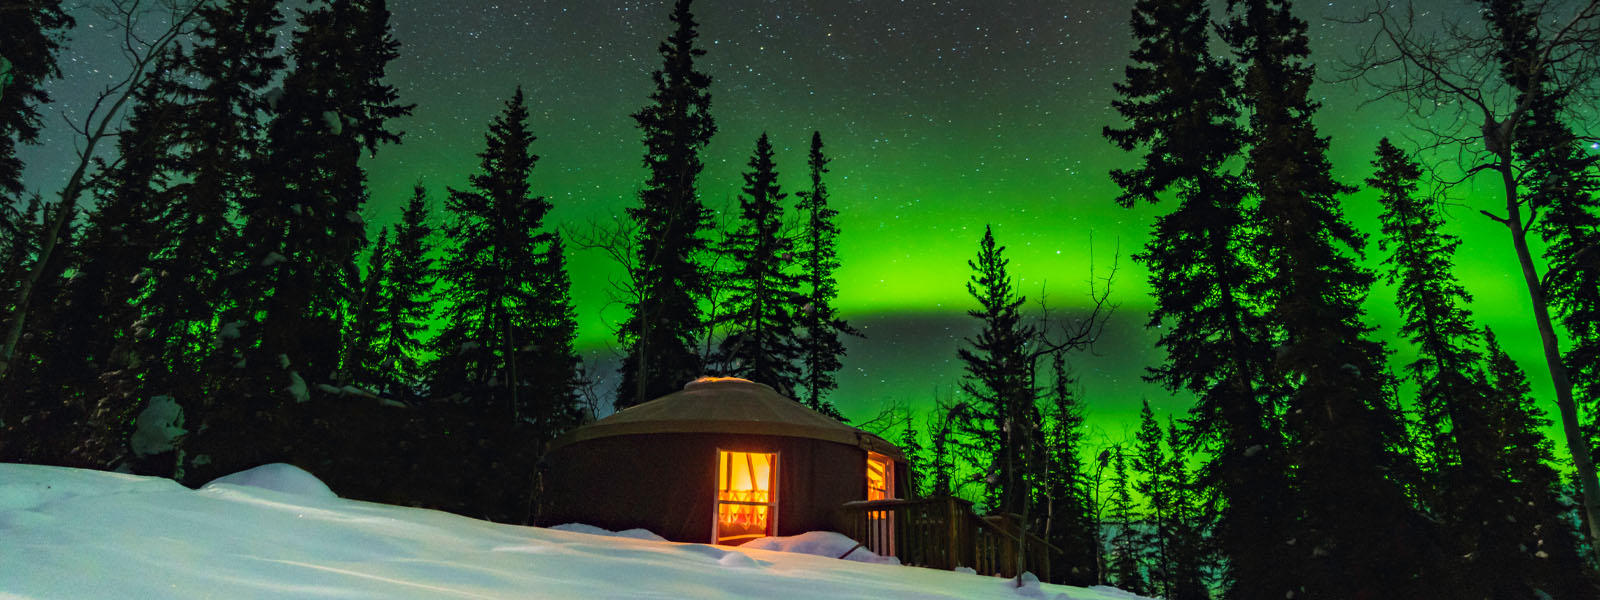 A cozy yurt under the northern lights